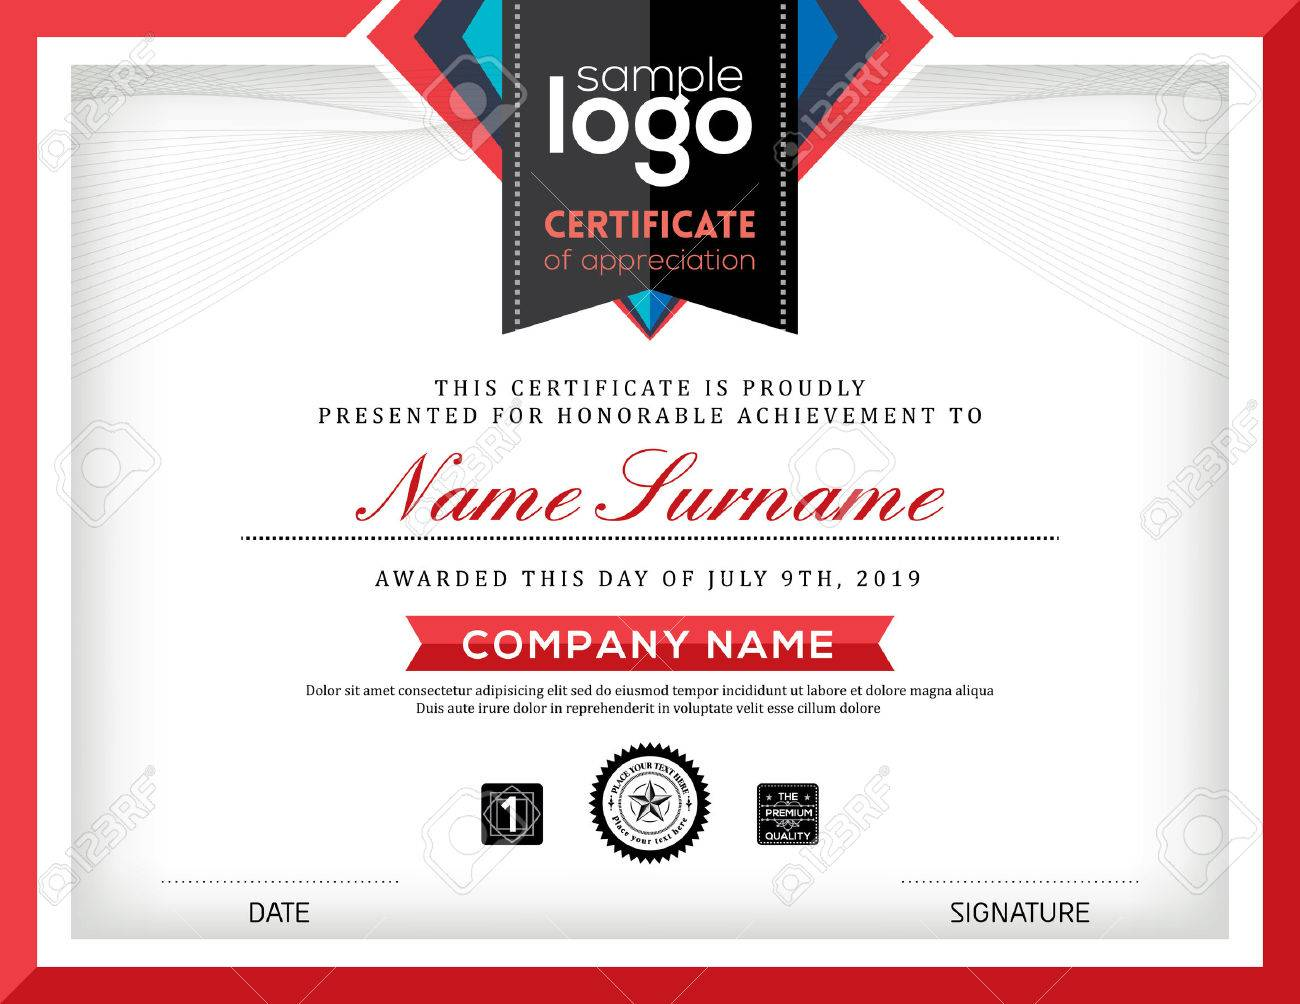 Modern certificate abstract graphic background frame design template - 53061941